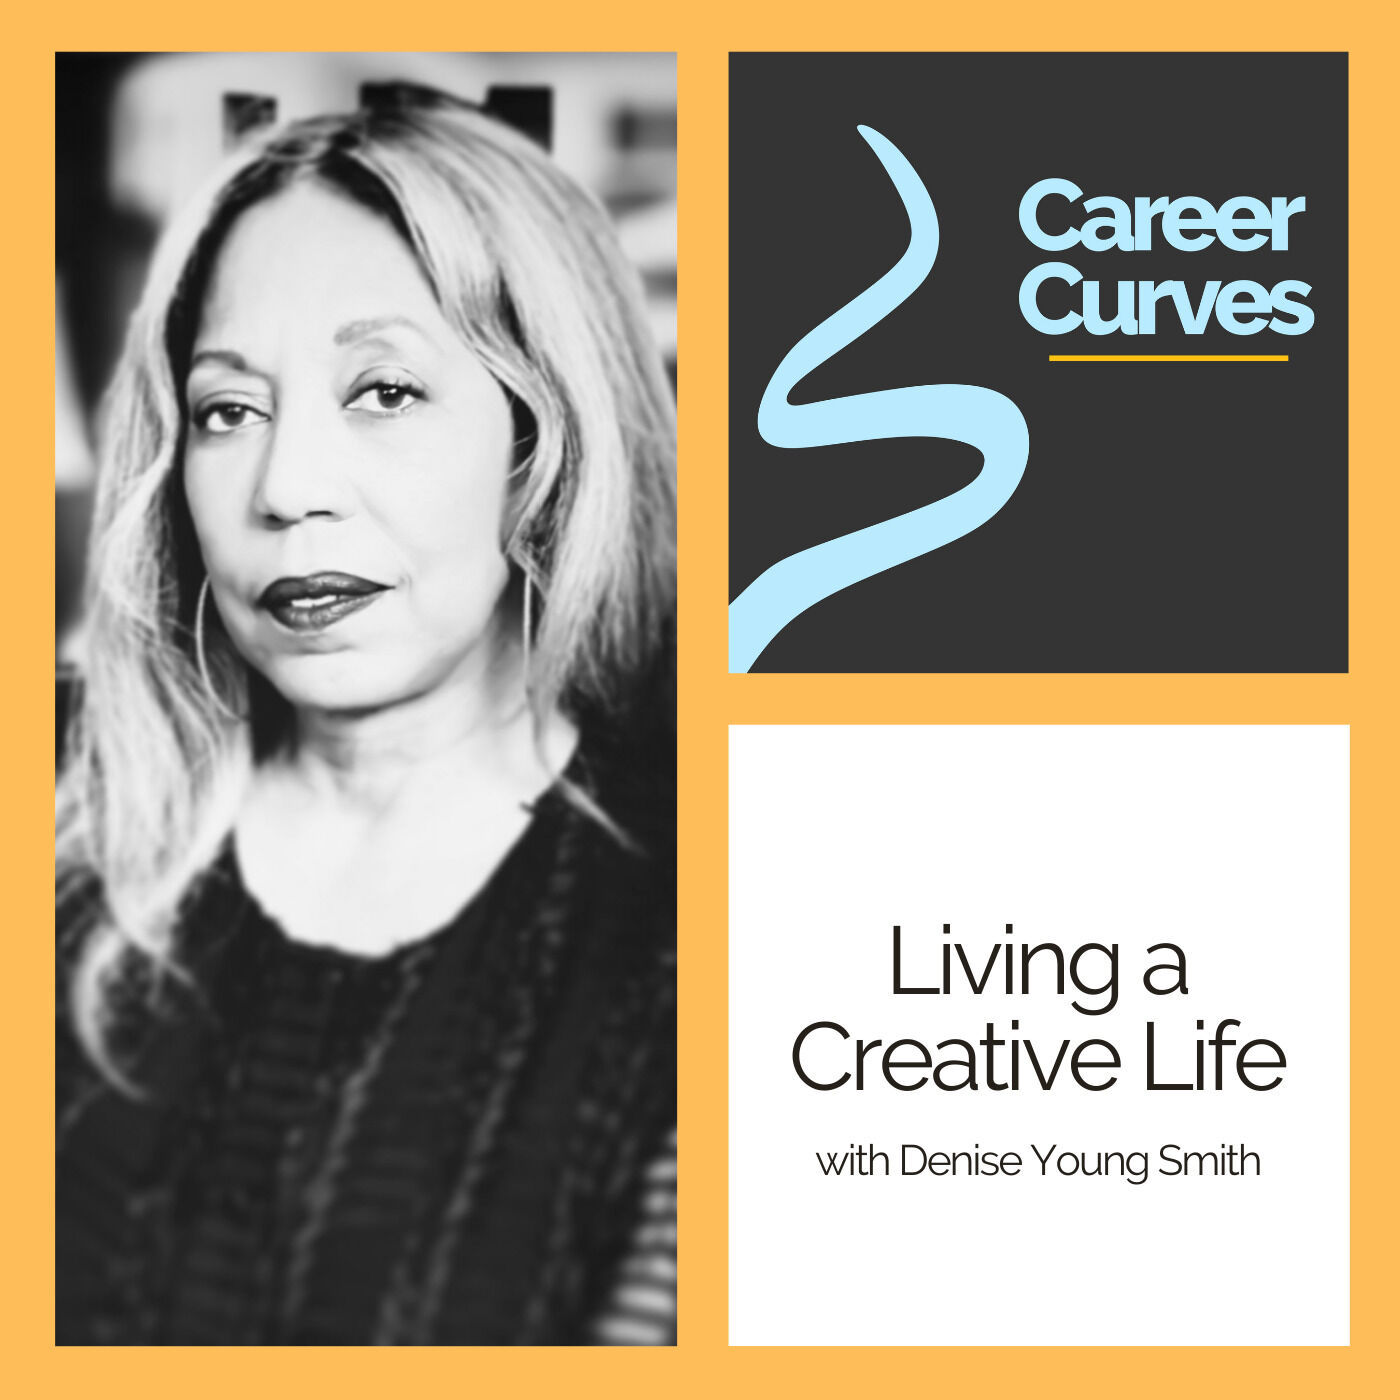 Living a Creative Life with Denise Young Smith